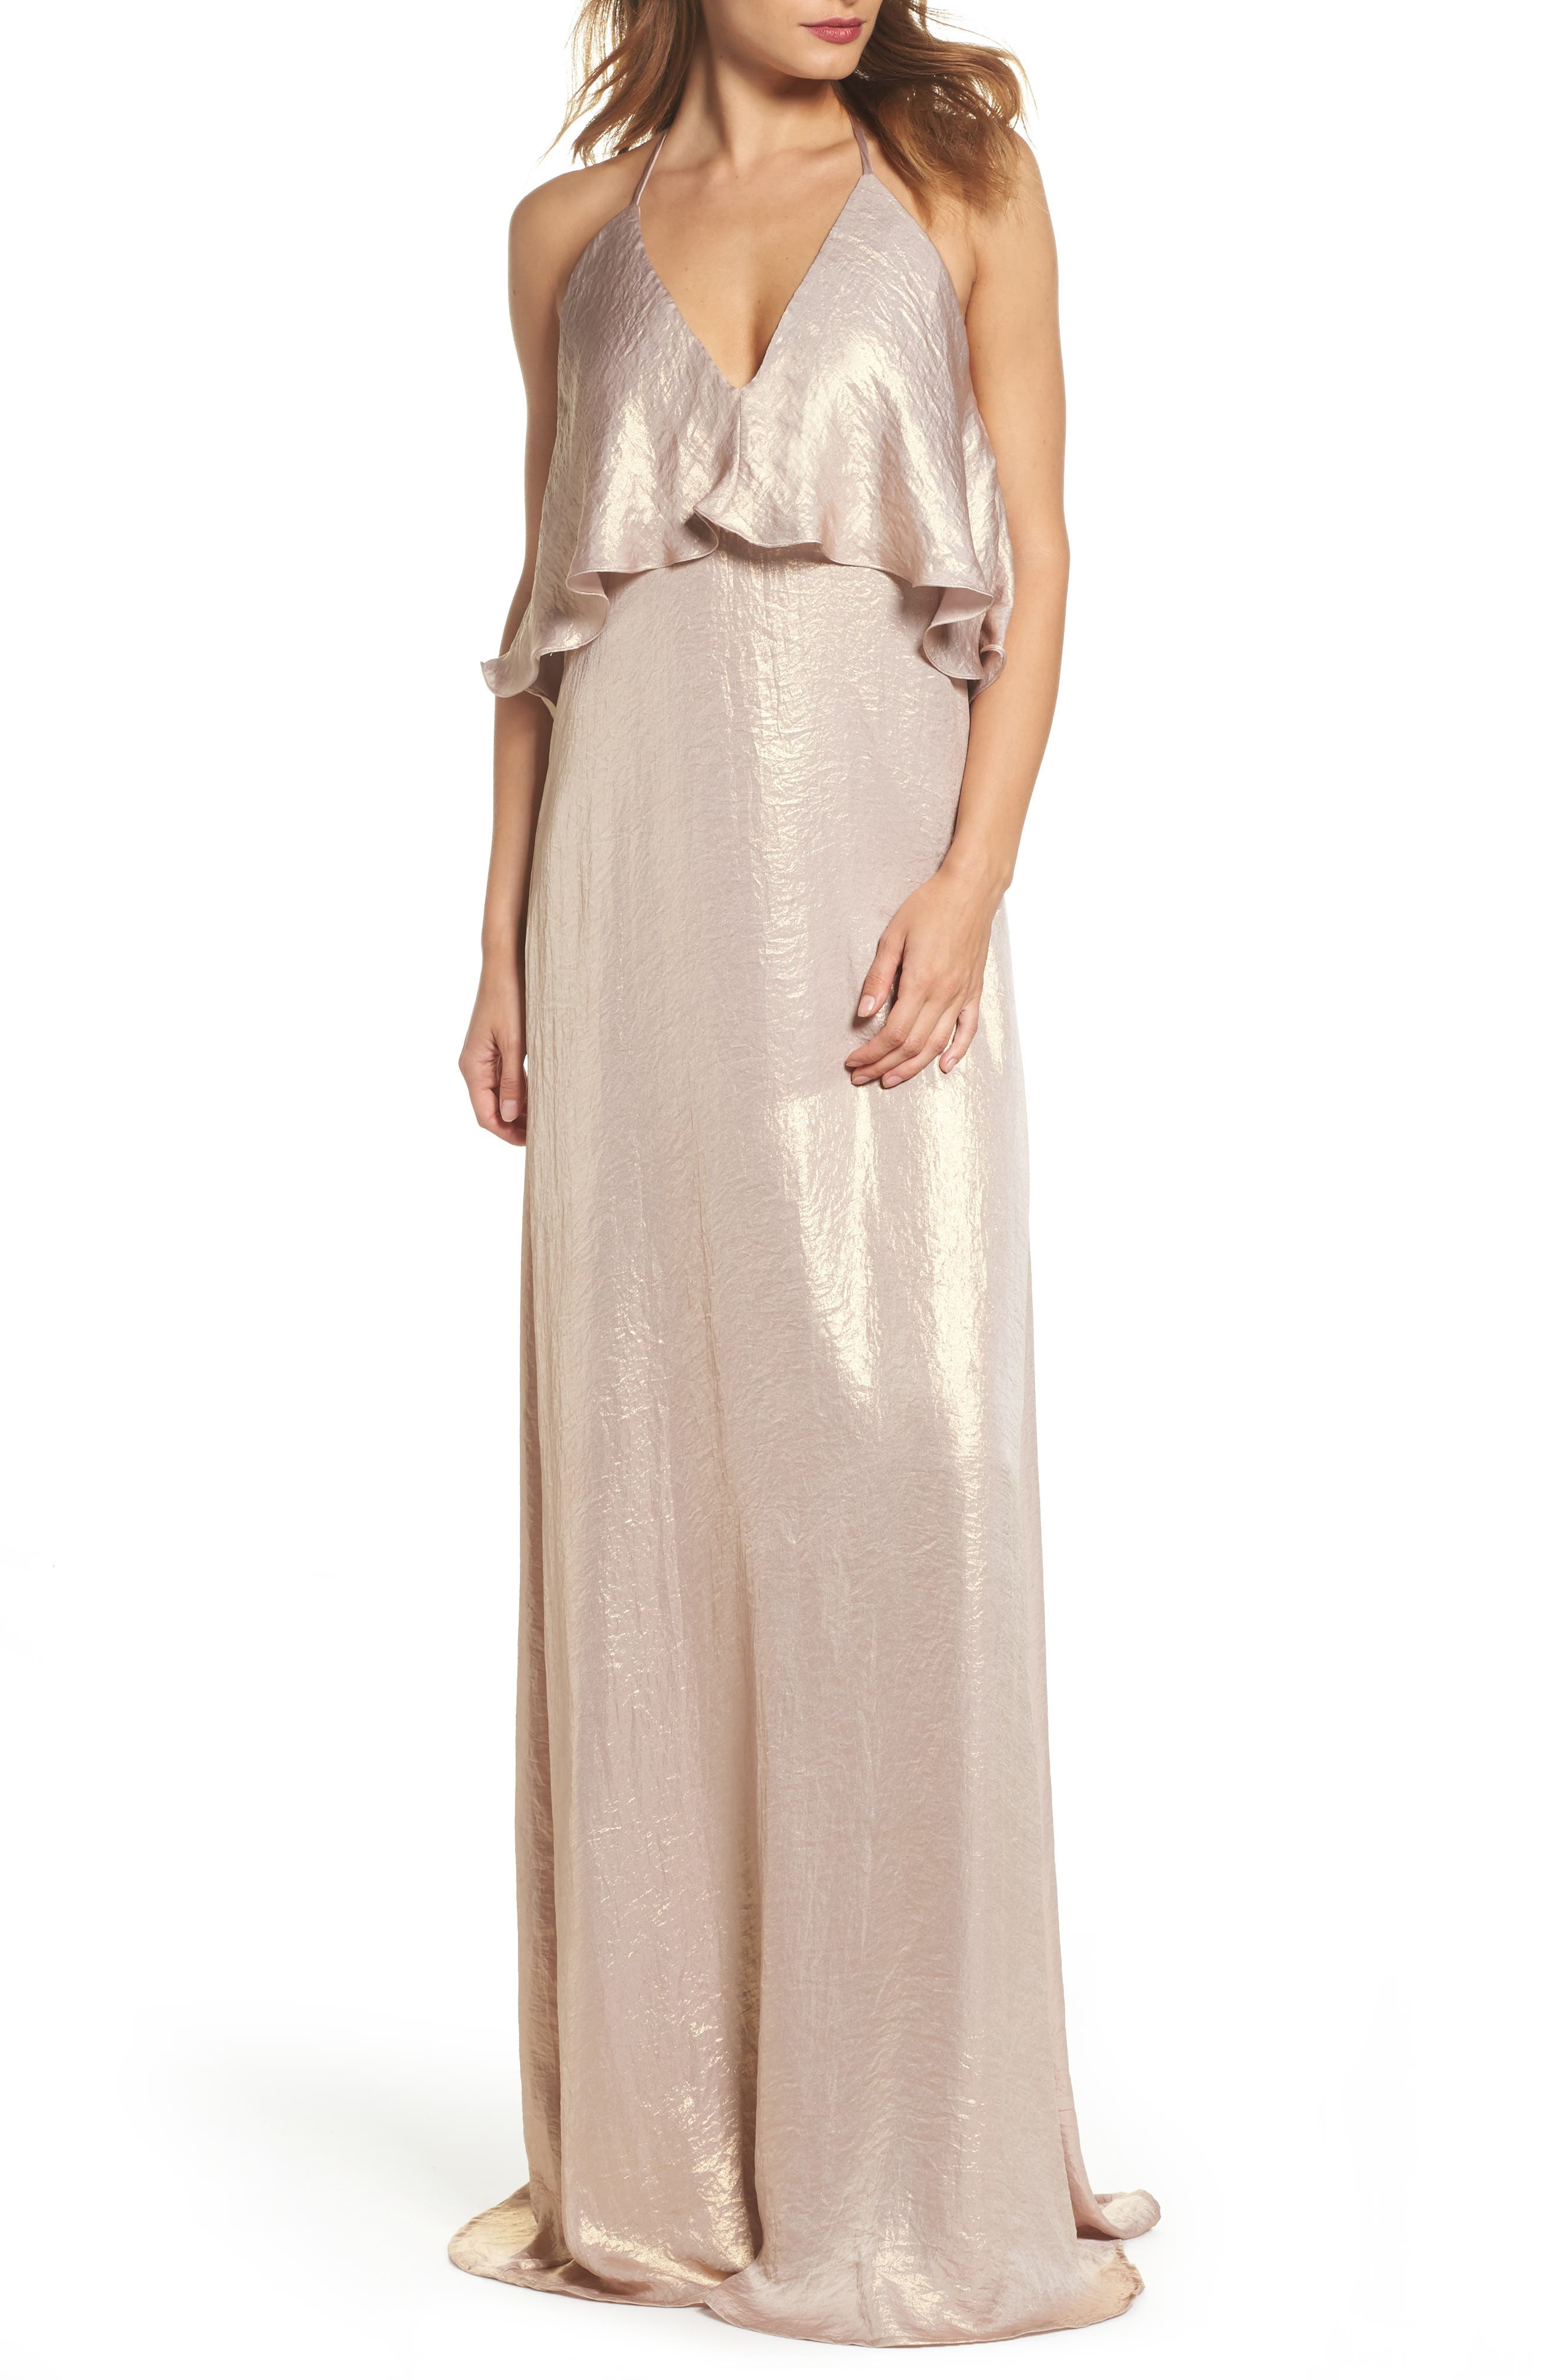 Crushed Satin Popover Halter Gown,                             Main thumbnail 1, color,                             710